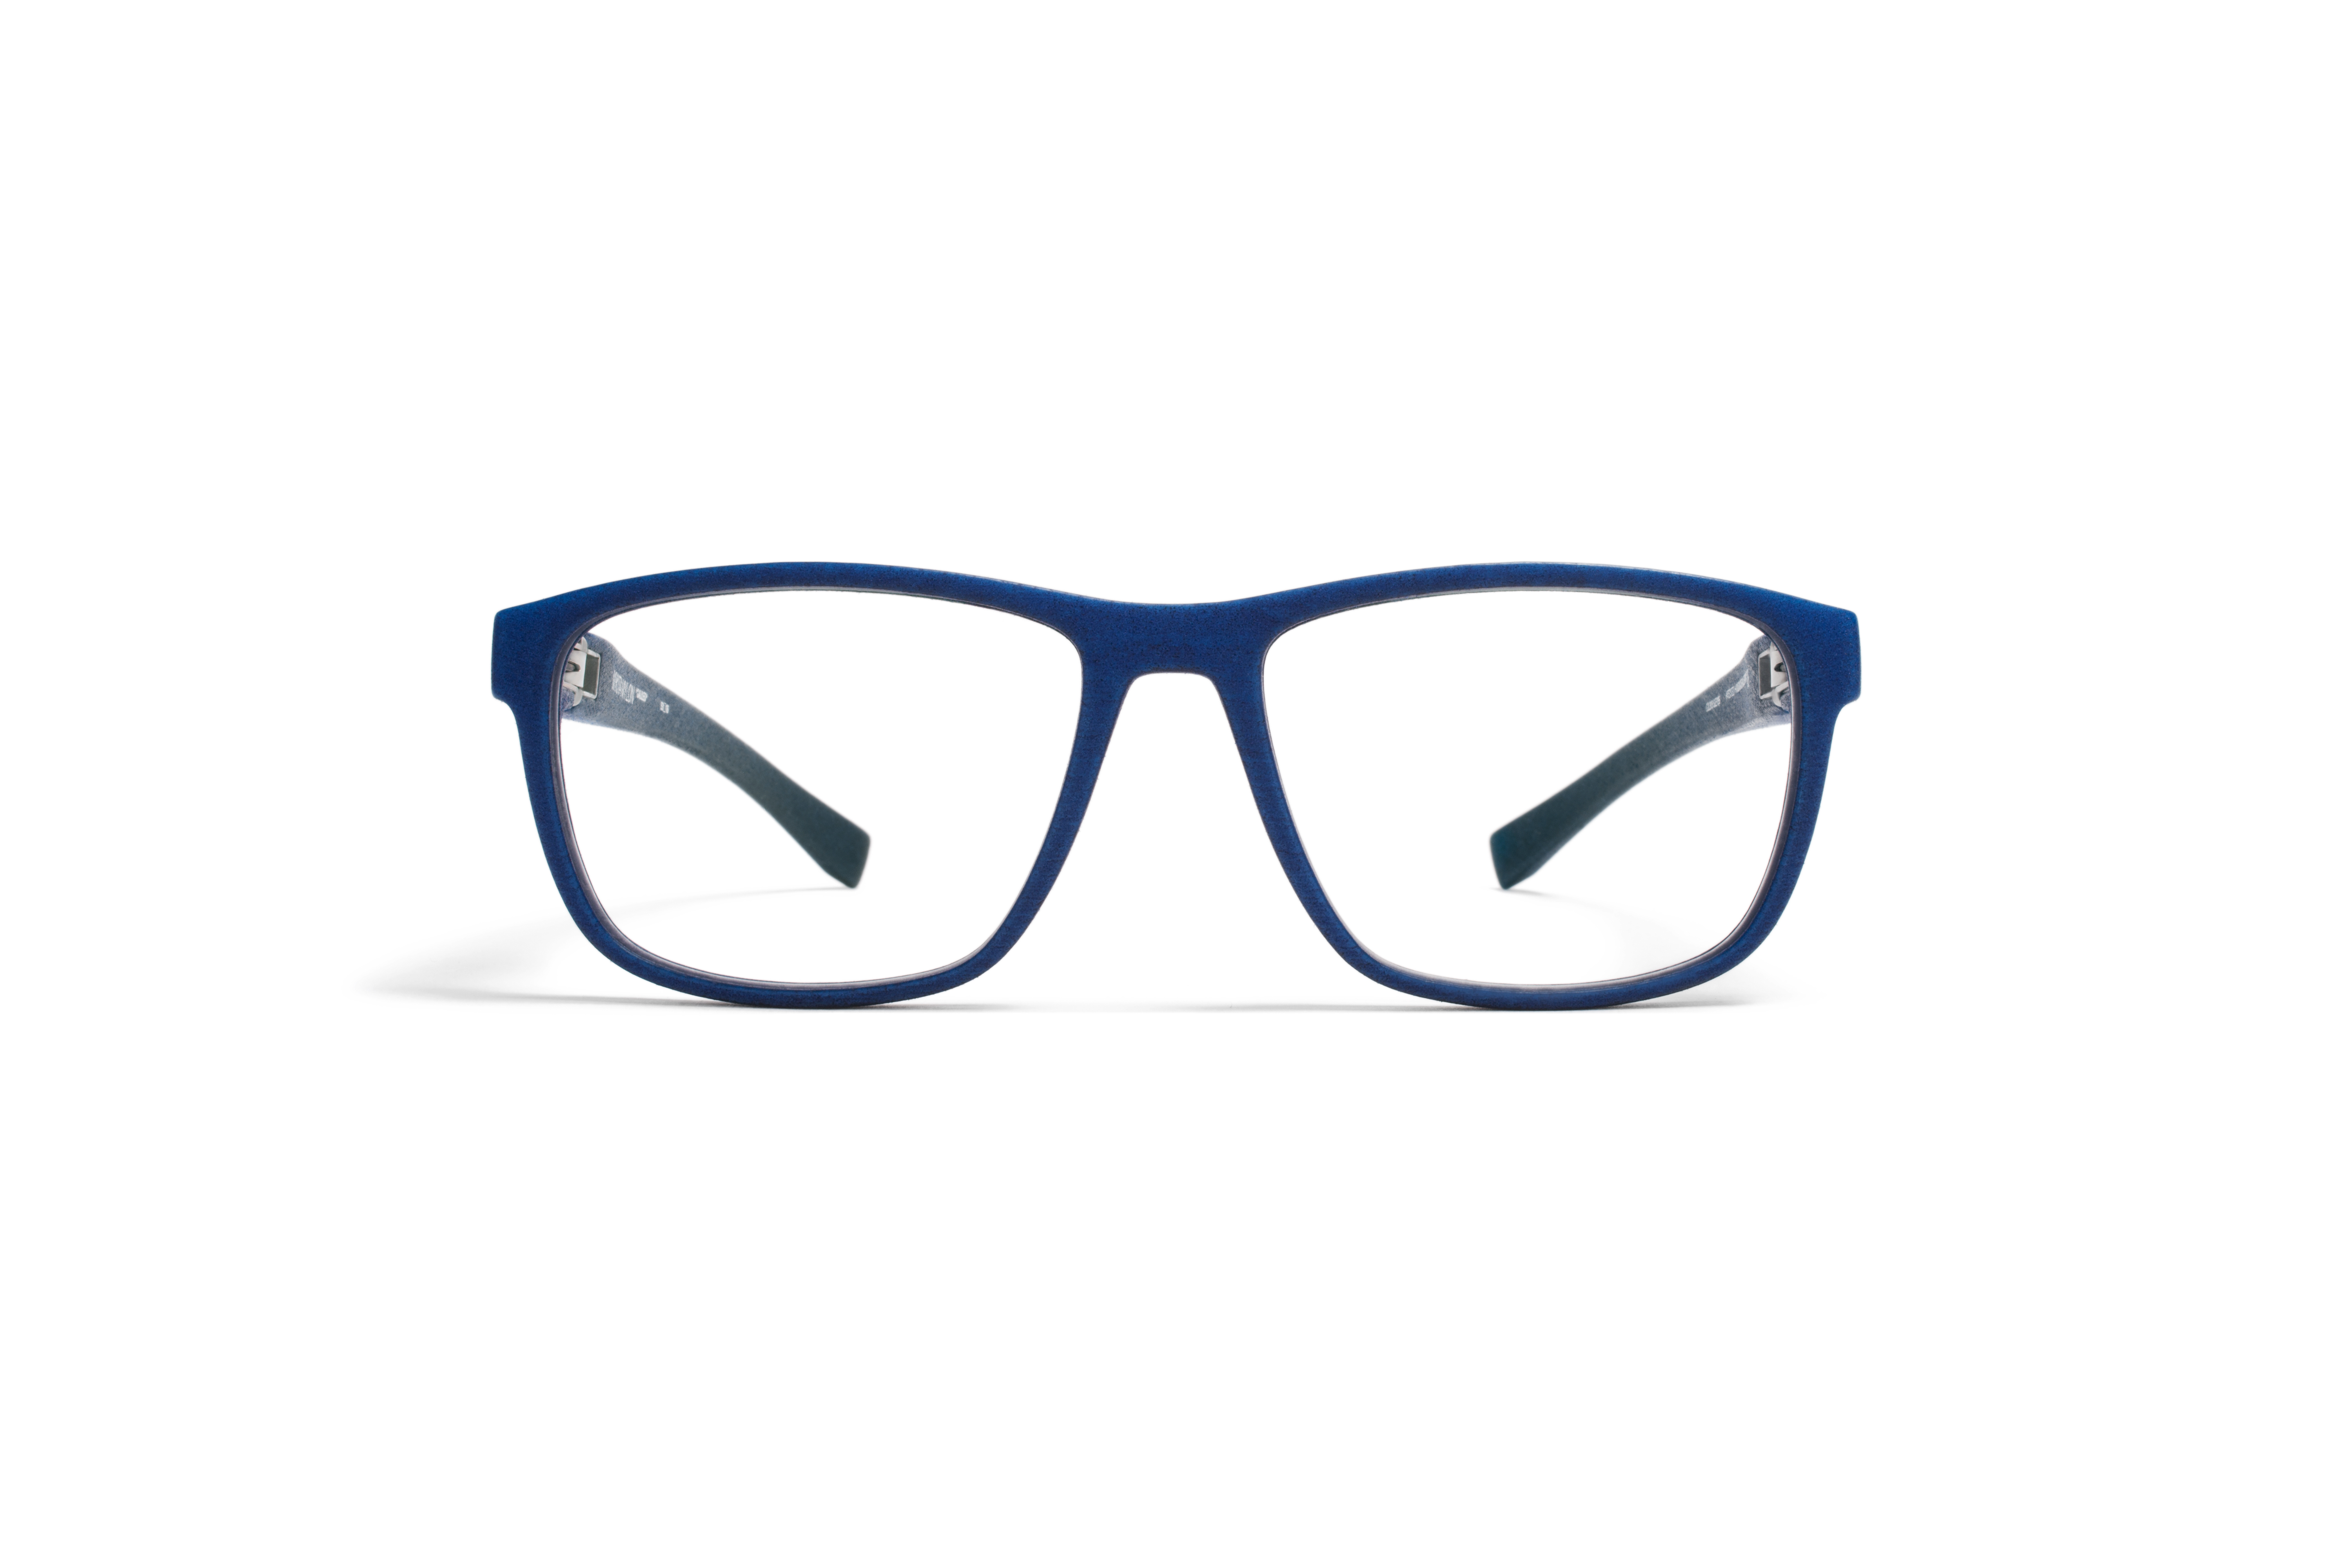 Mykita Mylon Rx Galileo Md18 Blue Clear 3501946 P 546e3337abe80